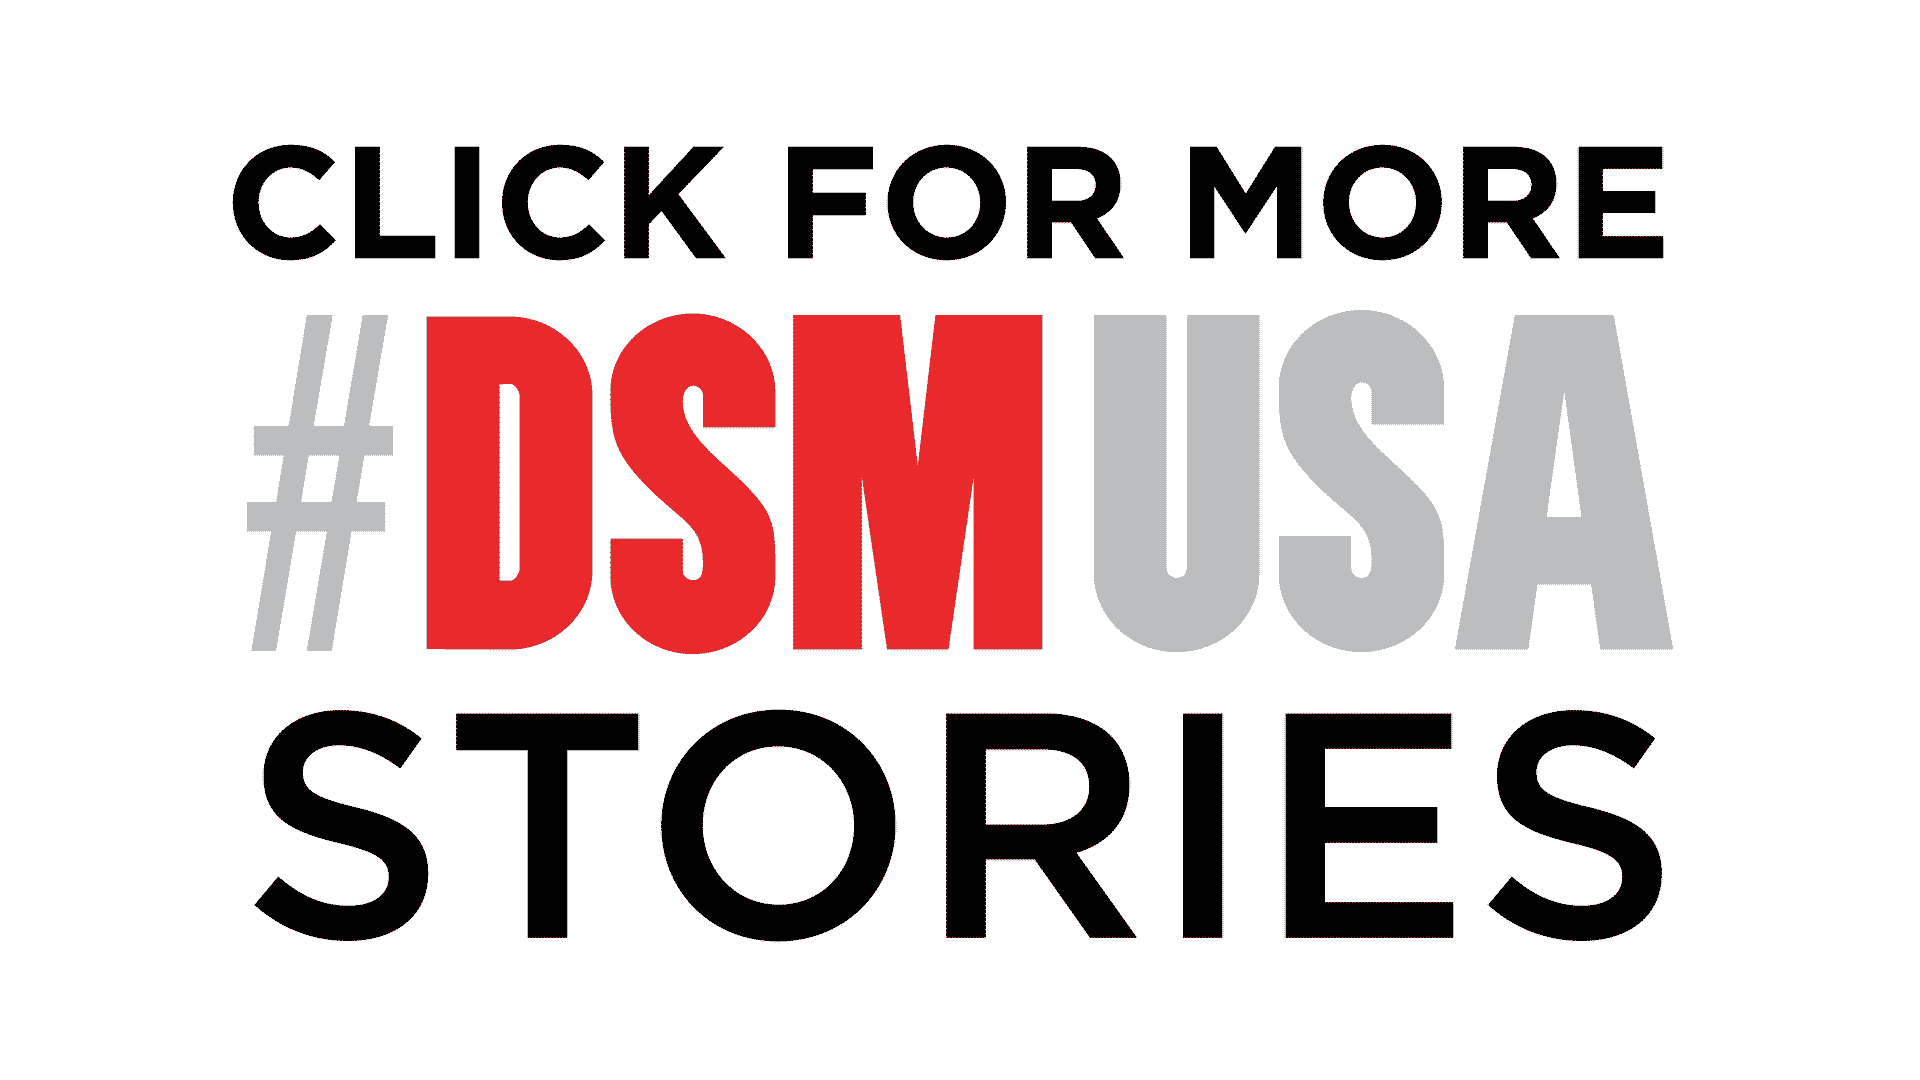 Click for more #DSMUSA stories.